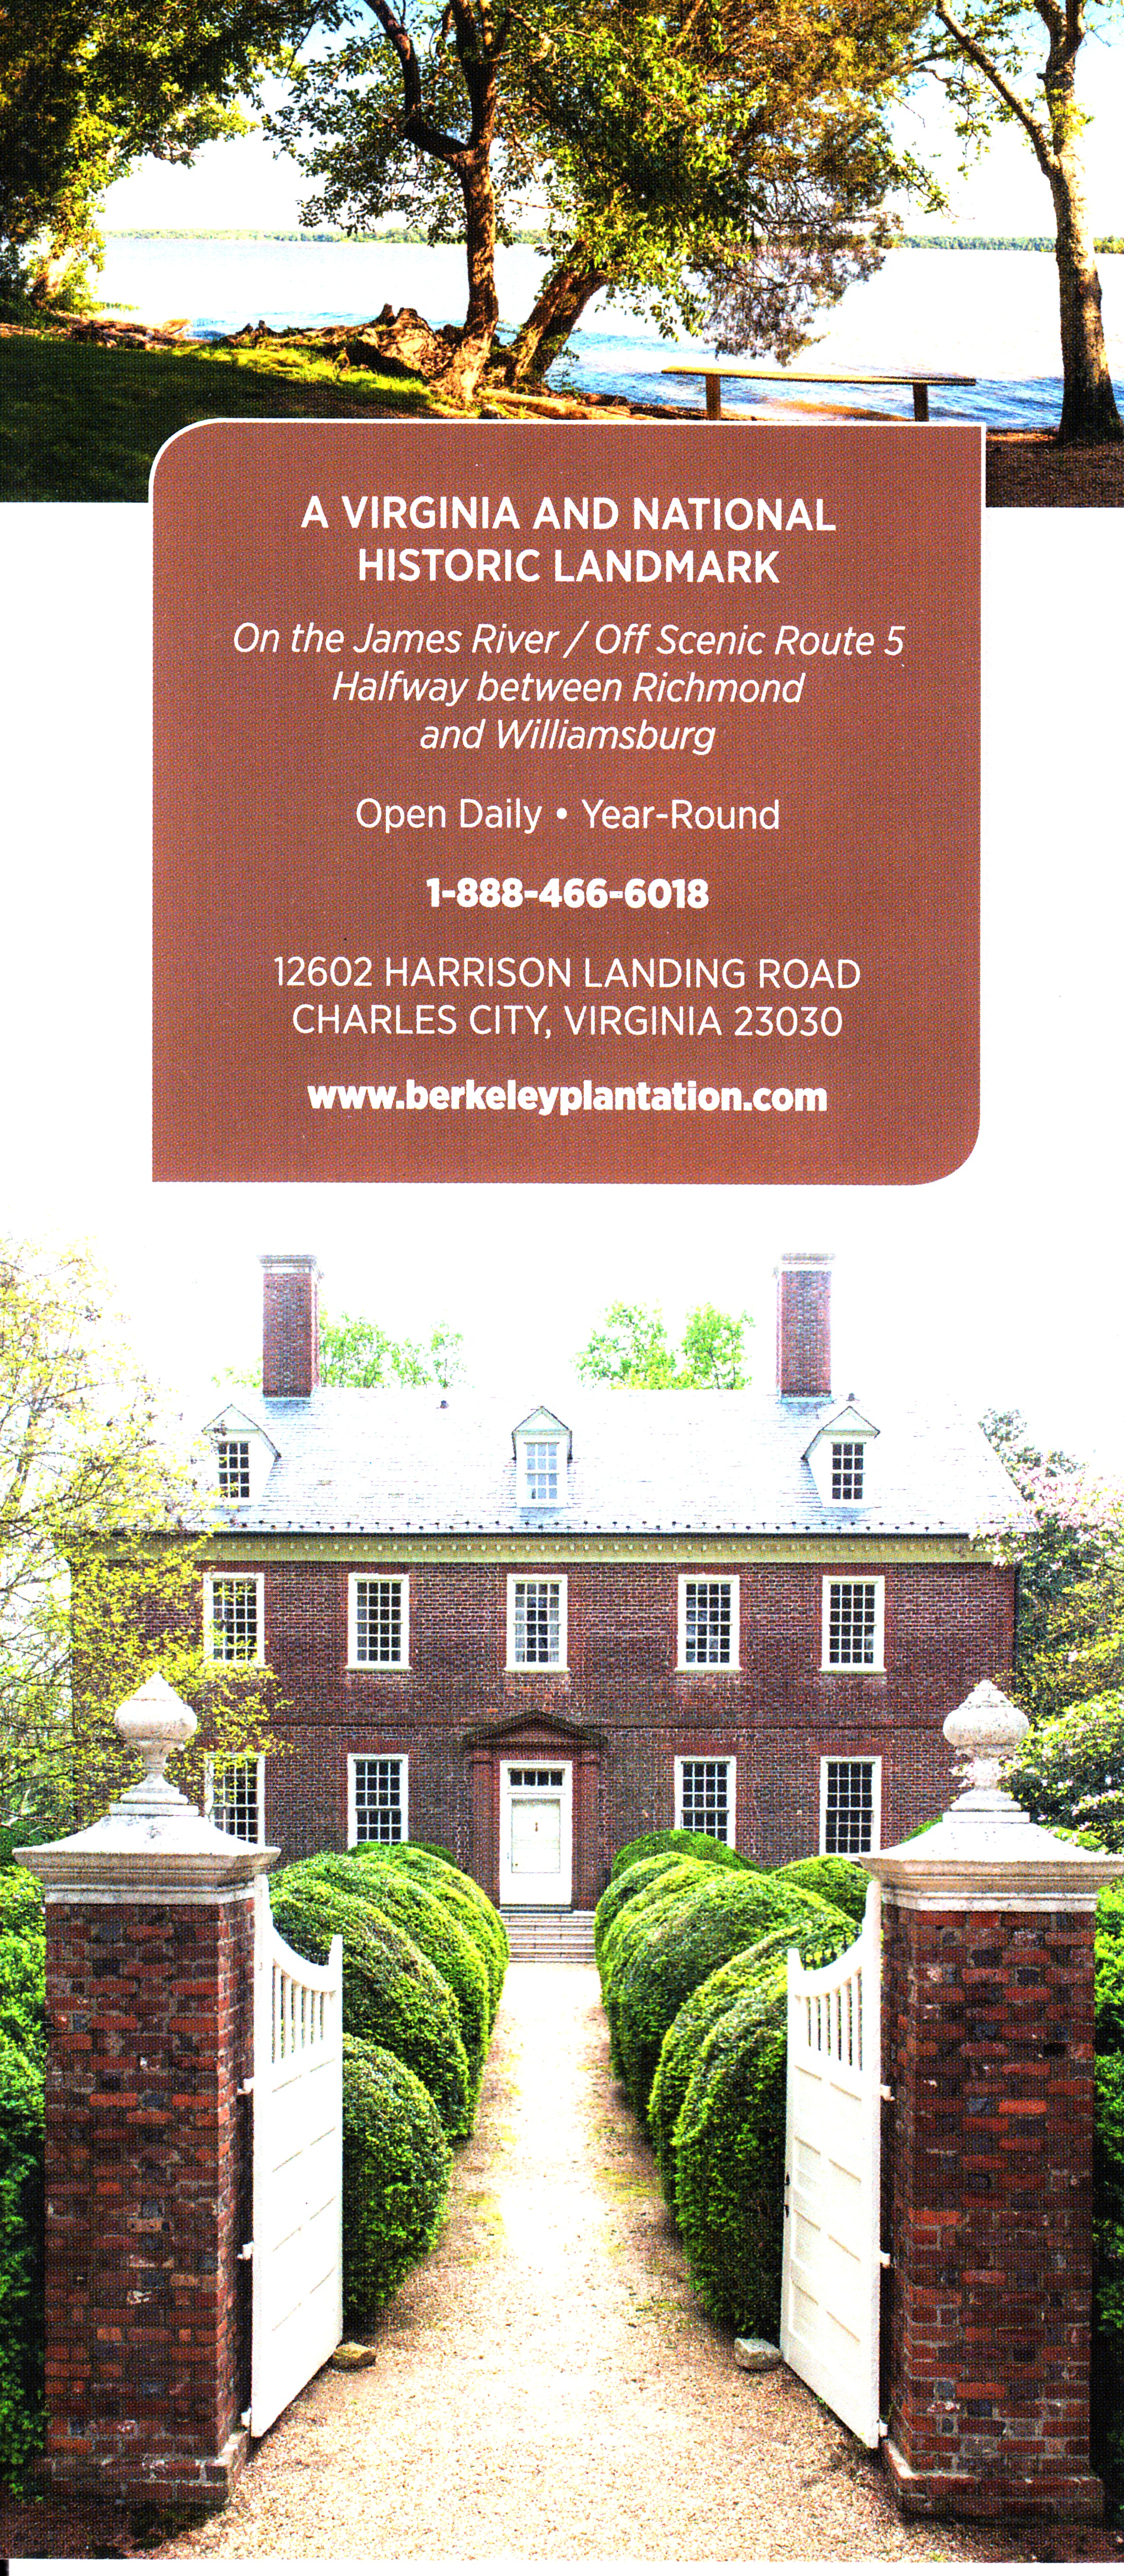 Berkeley Plantation Back Brochure Cover